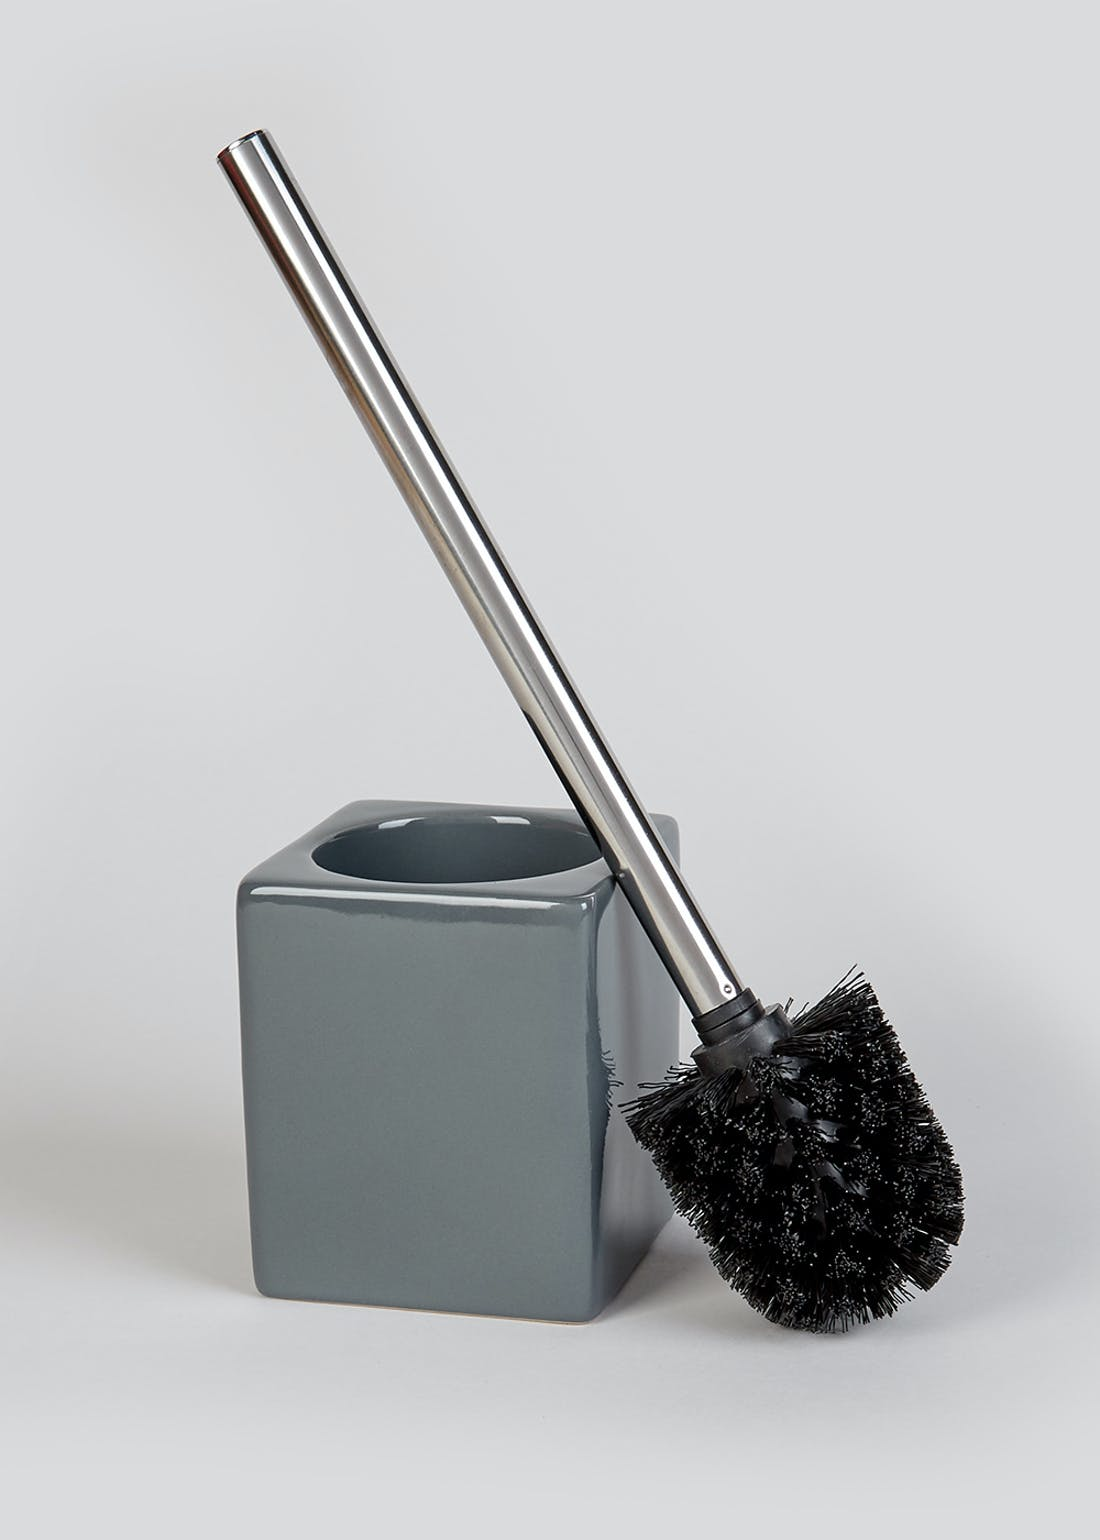 Square Ceramic Toilet Brush (39cm x 10cm)